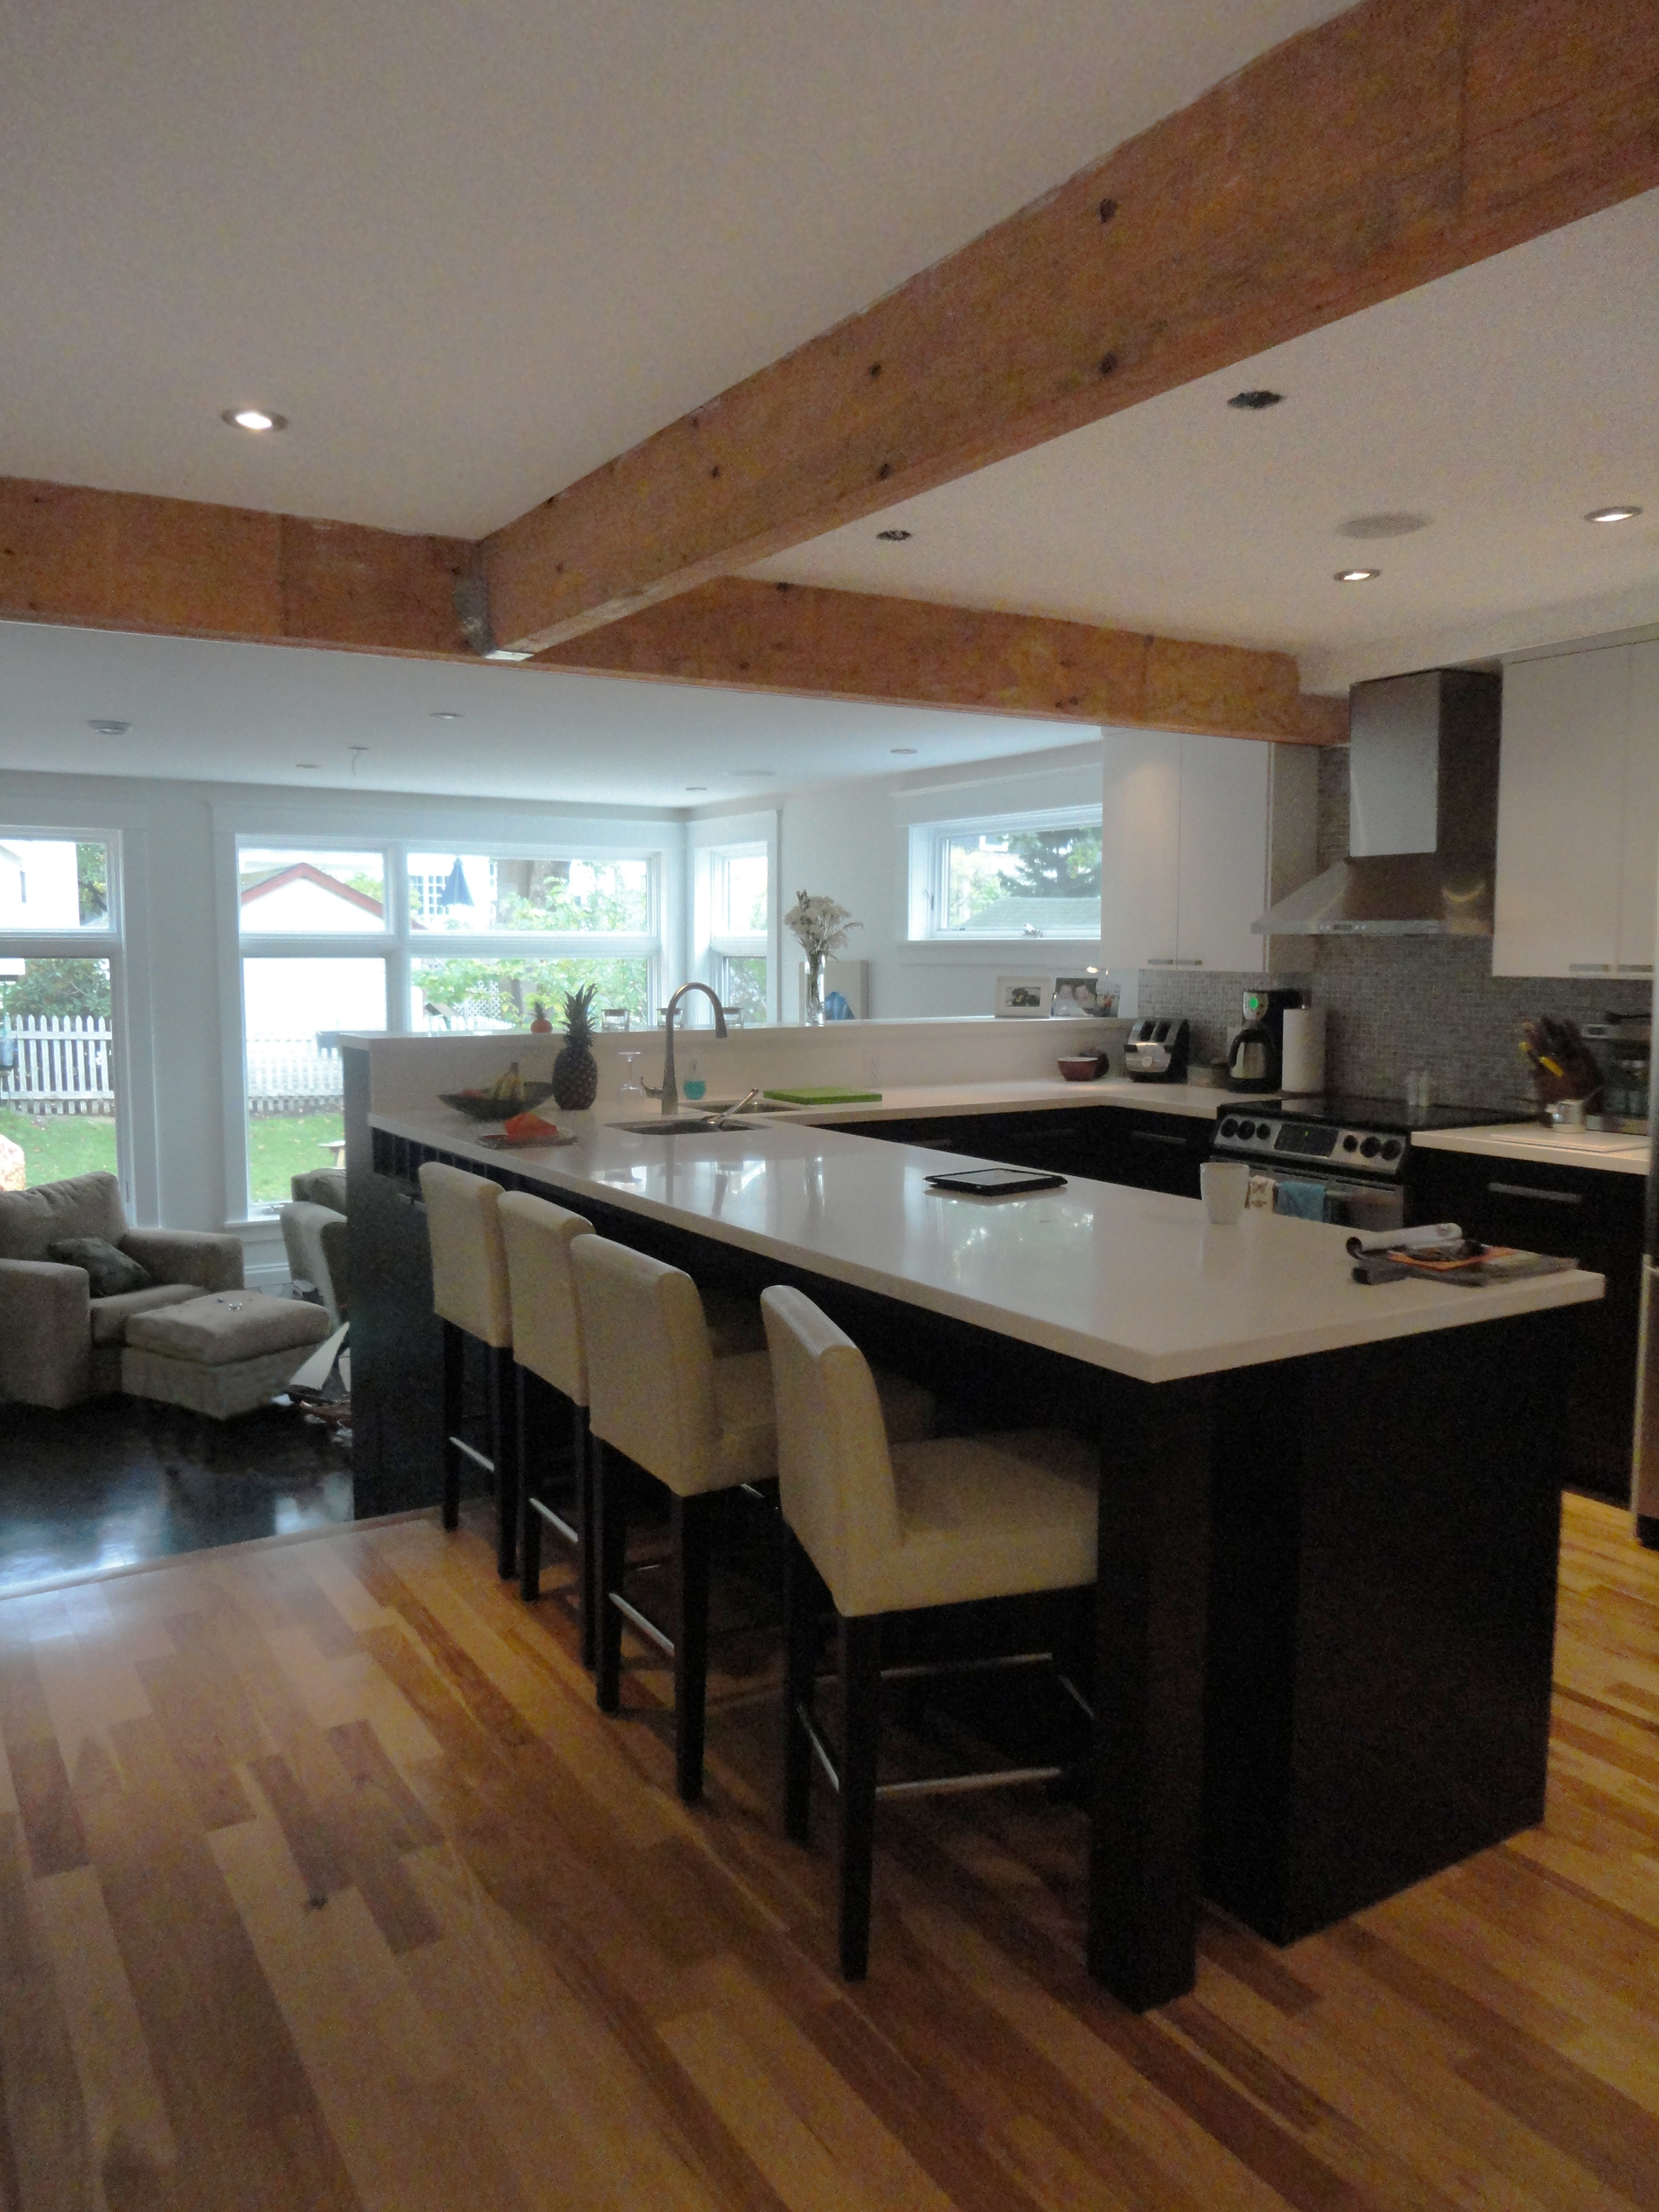 """The heart of this renovation, the new open concept kitchen connects the living spaces and has great views to yard.                                Normal    0                false    false    false       EN-US    JA    X-NONE                                                                                                                                                                                                                                                                                                                                                                                                                                                                                                                                              /* Style Definitions */ table.MsoNormalTable {mso-style-name:""""Table Normal""""; mso-tstyle-rowband-size:0; mso-tstyle-colband-size:0; mso-style-noshow:yes; mso-style-priority:99; mso-style-parent:""""""""; mso-padding-alt:0cm 5.4pt 0cm 5.4pt; mso-para-margin:0cm; mso-para-margin-bottom:.0001pt; mso-pagination:widow-orphan; font-size:12.0pt; font-family:Cambria; mso-ascii-font-family:Cambria; mso-ascii-theme-font:minor-latin; mso-hansi-font-family:Cambria; mso-hansi-theme-font:minor-latin;}"""